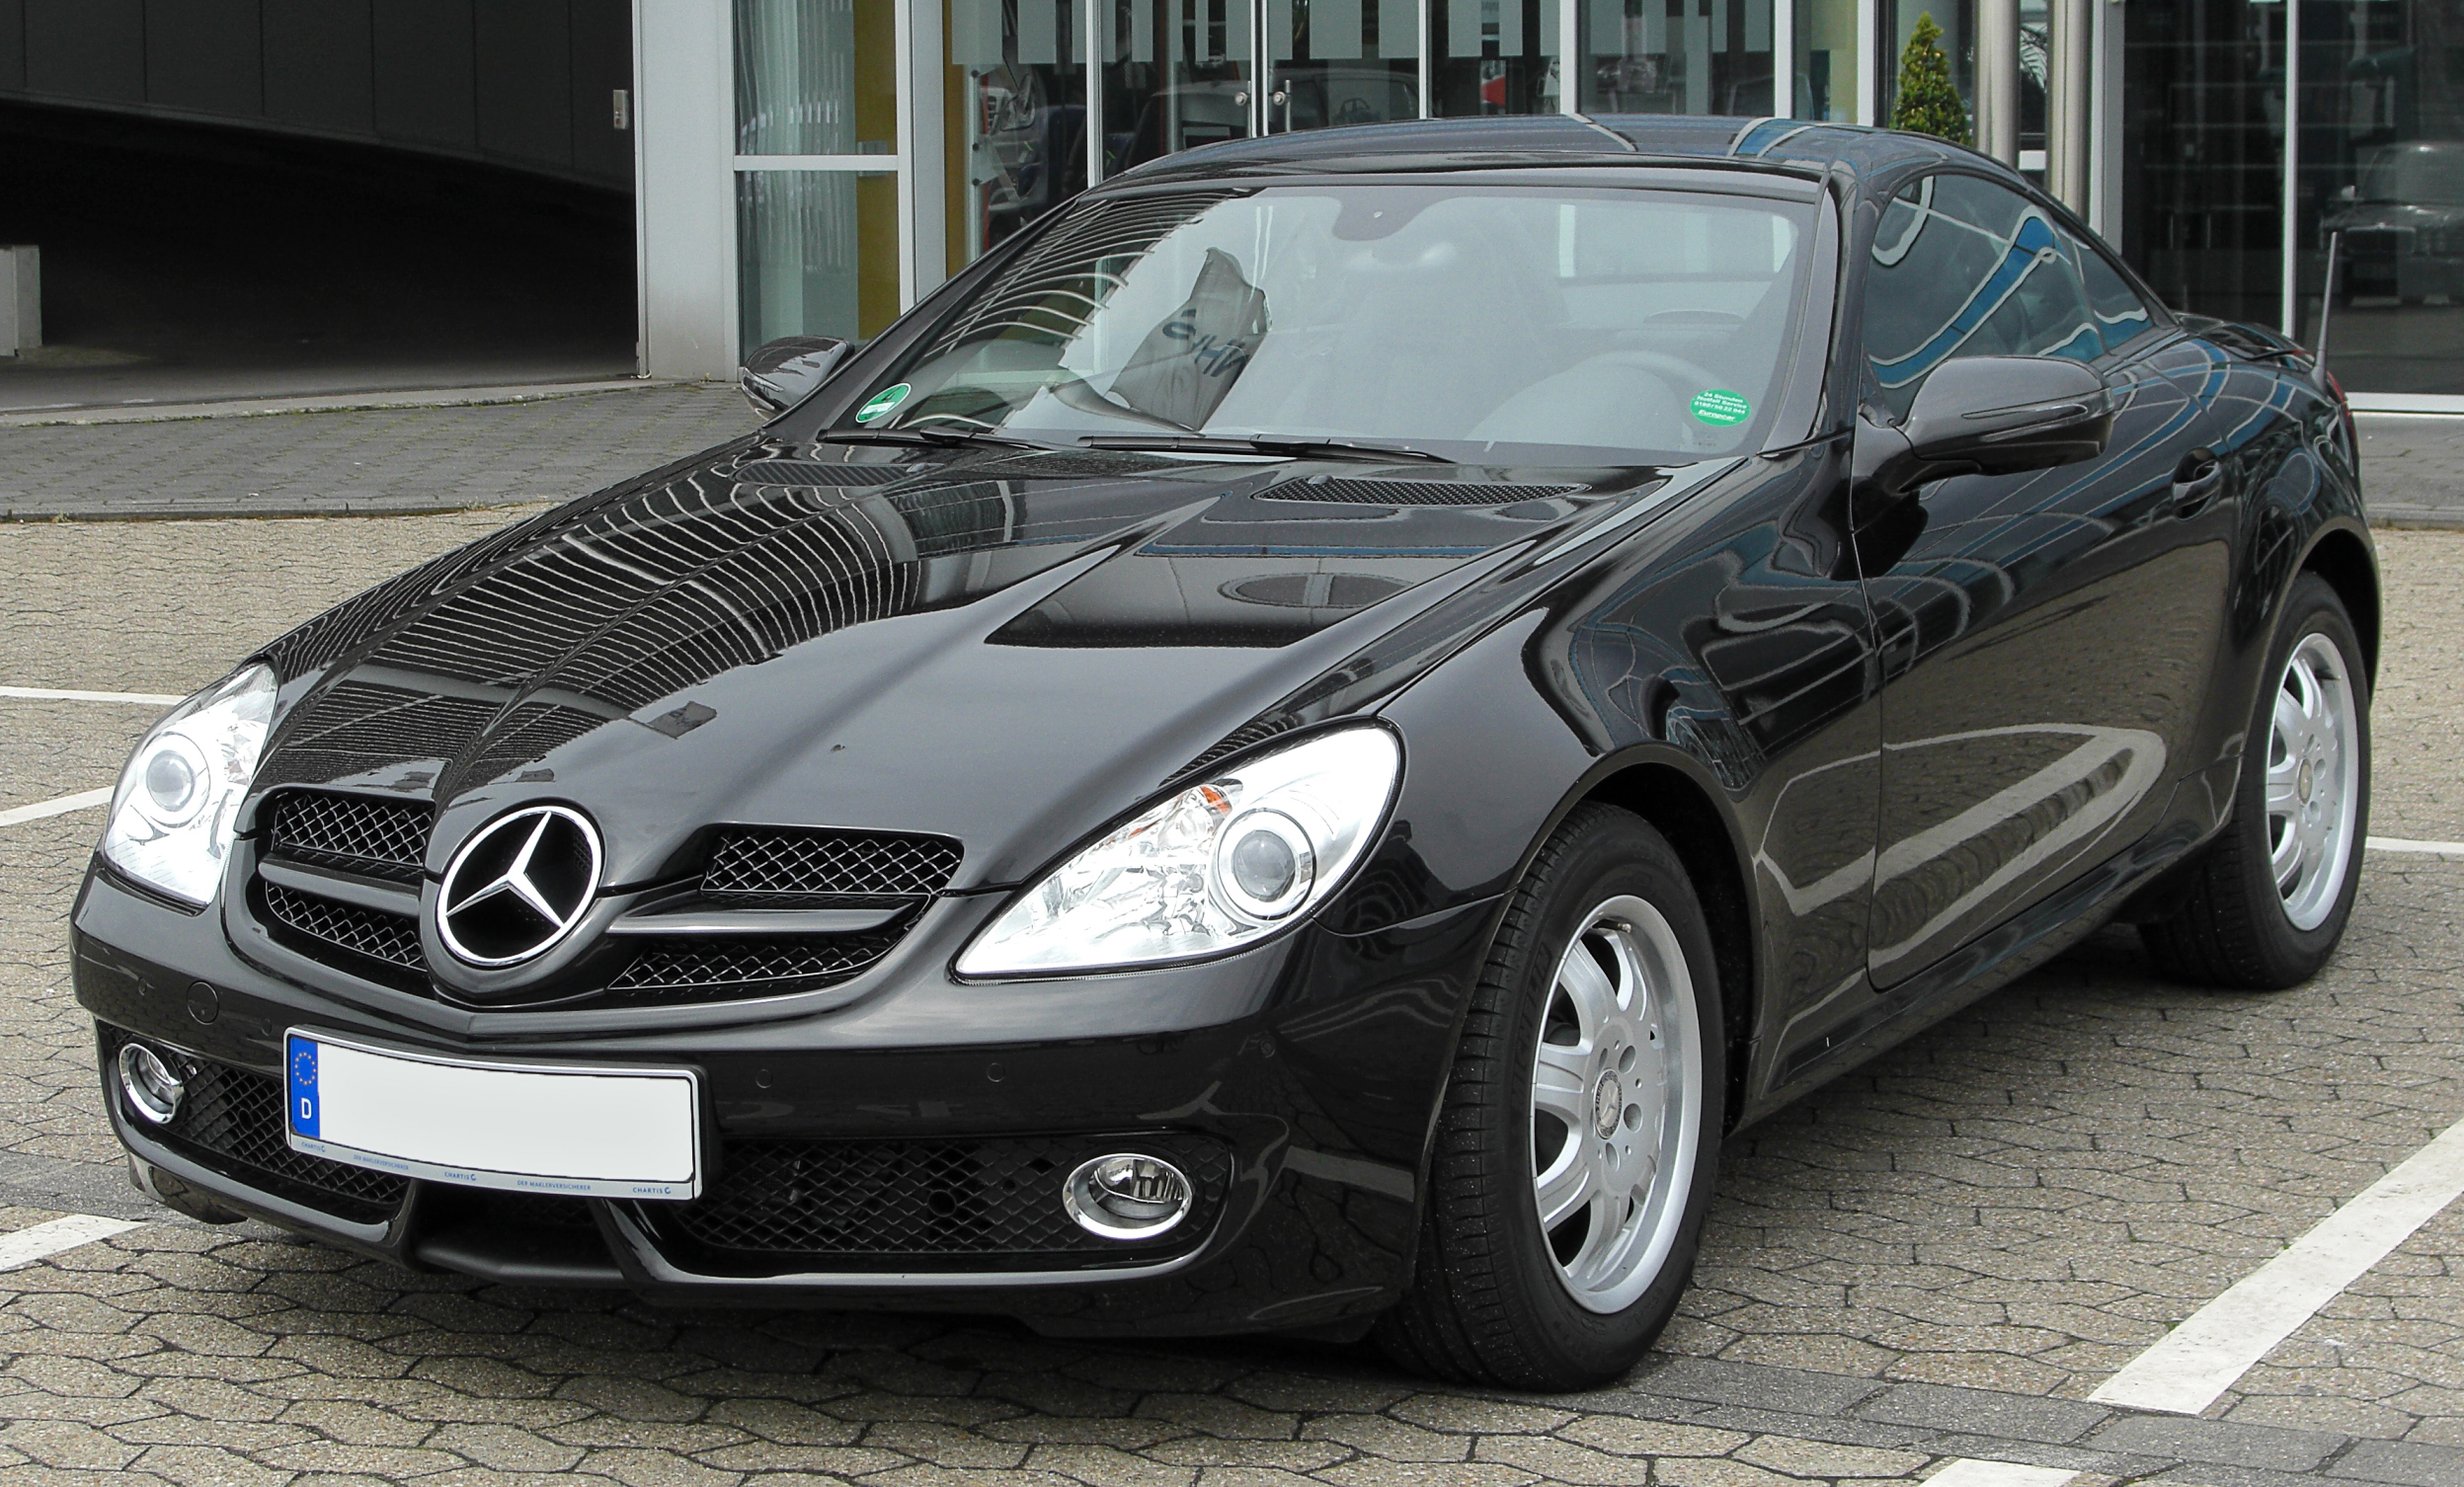 Description Mercedes SLK (R171) Facelift front 20100508.jpg